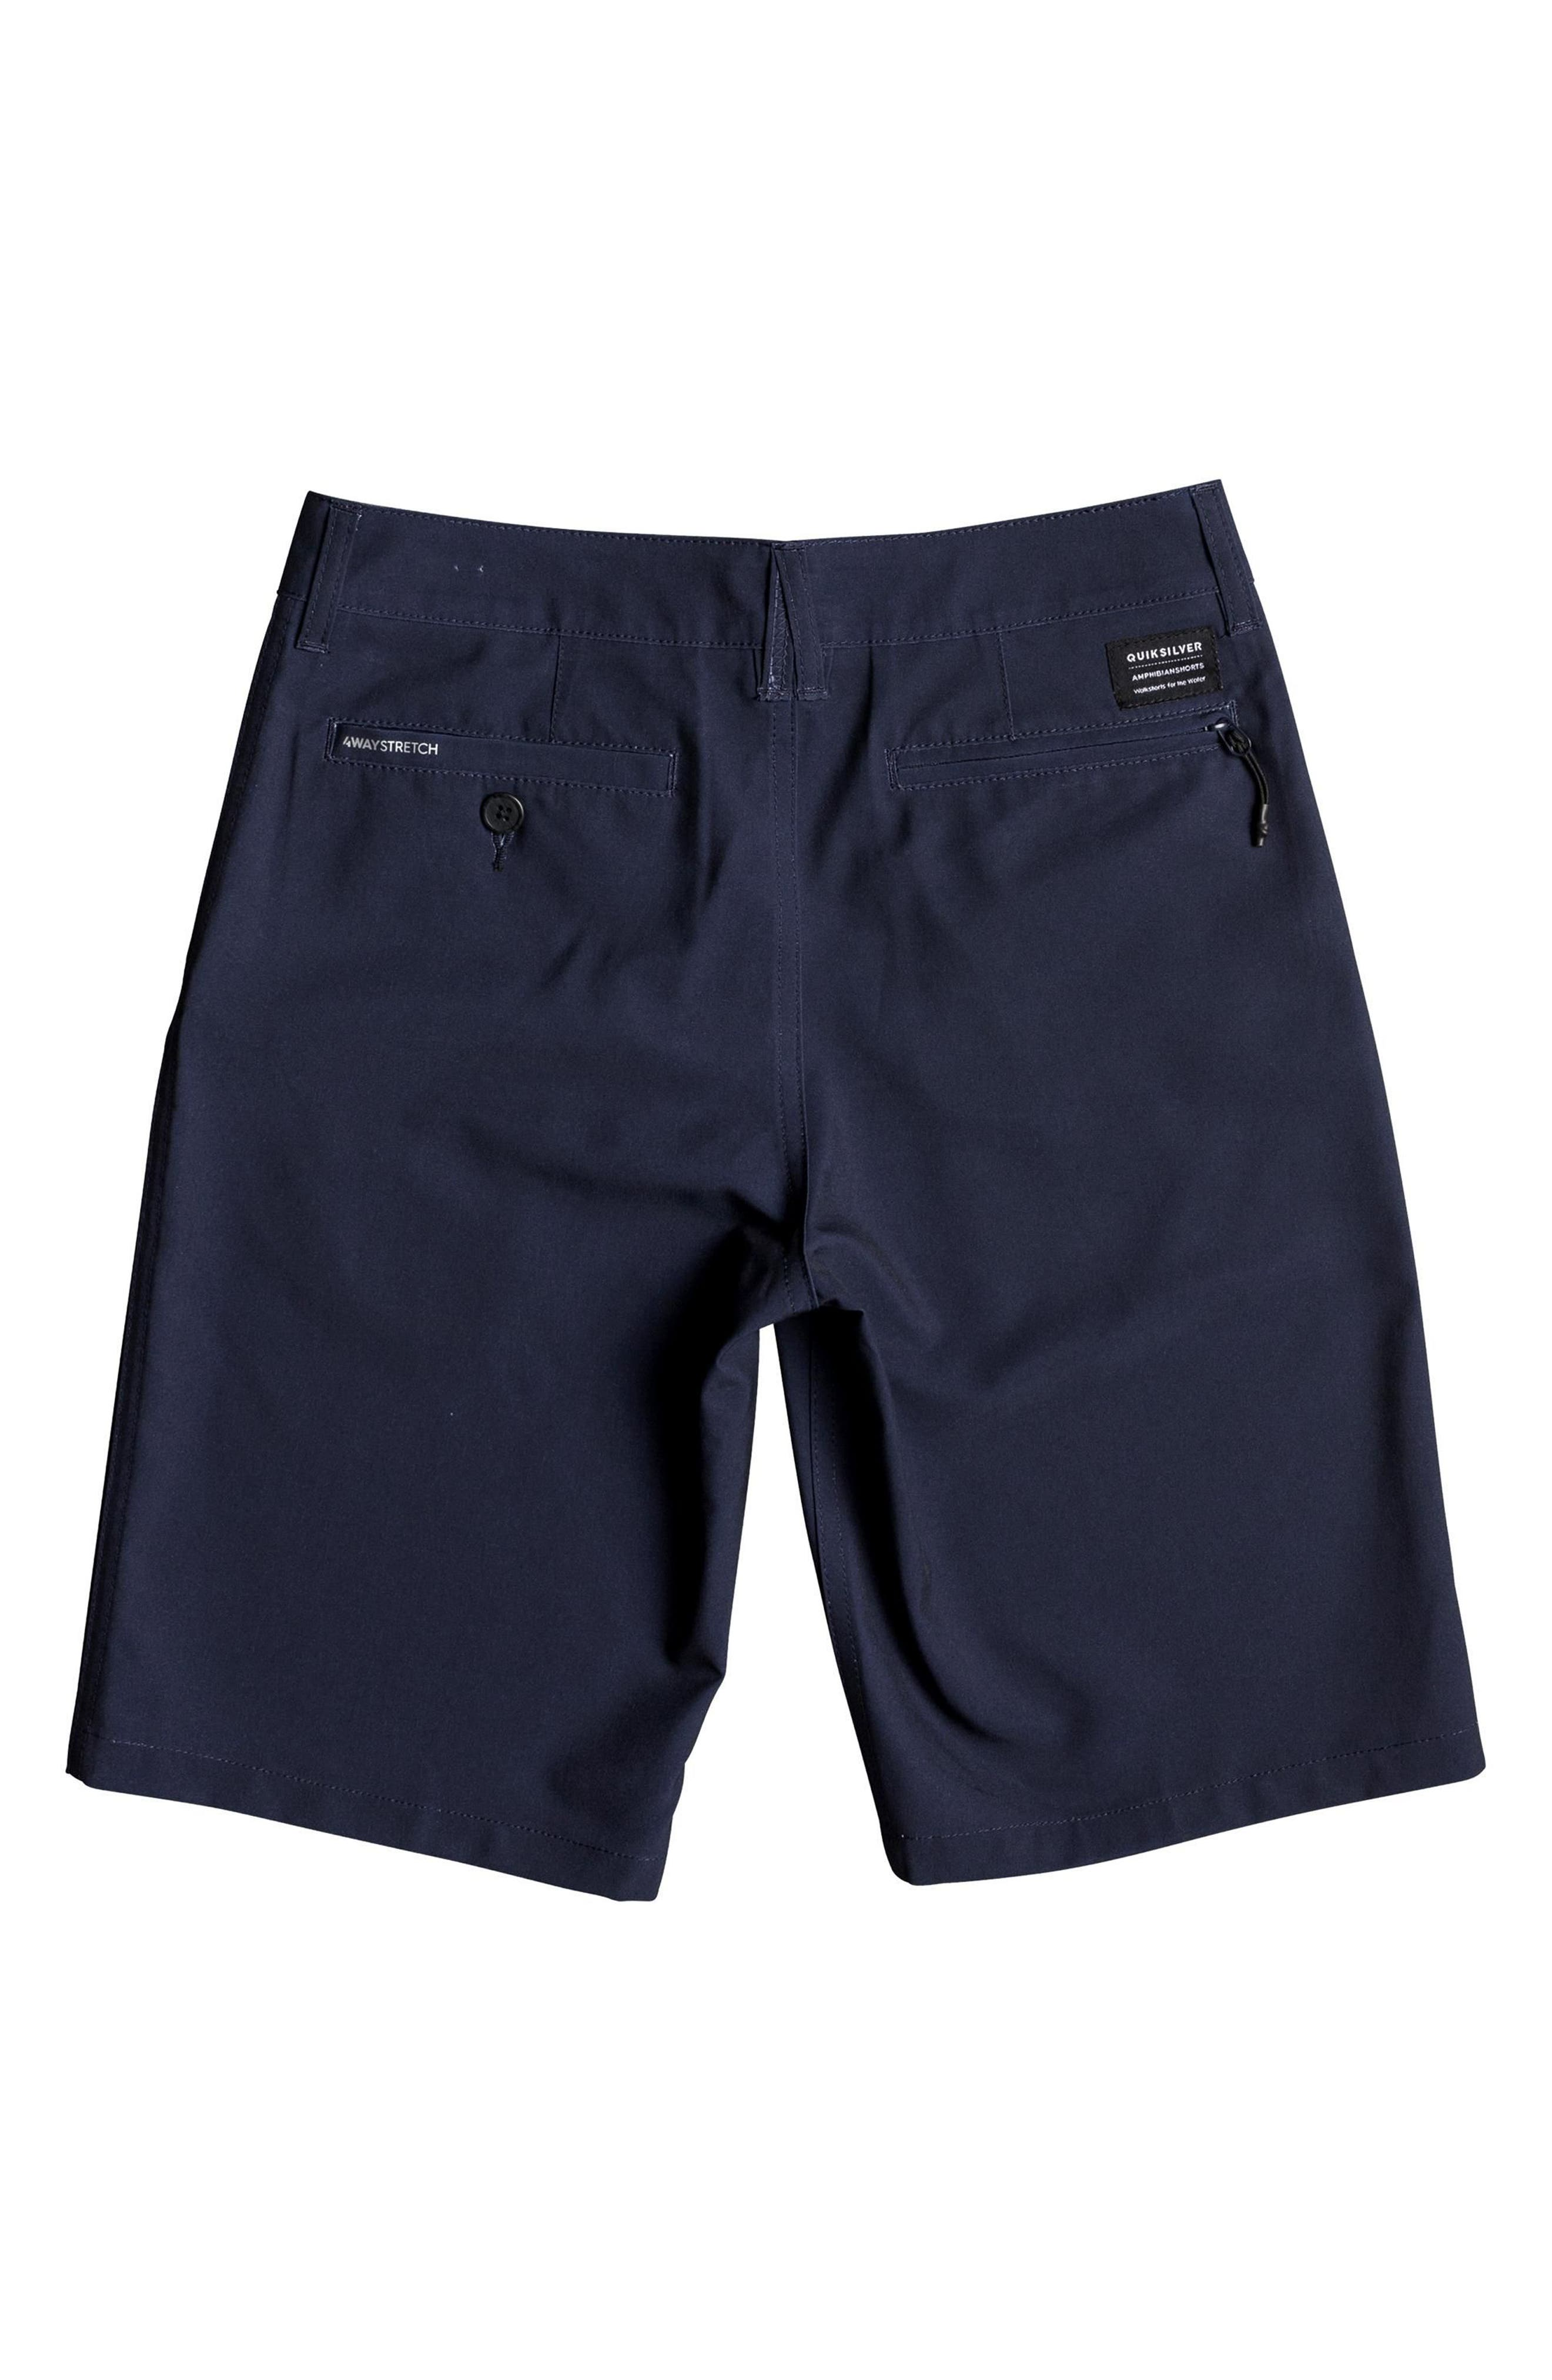 QUIKSILVER, Union Amphibian Hybrid Shorts, Alternate thumbnail 2, color, NAVY BLAZER